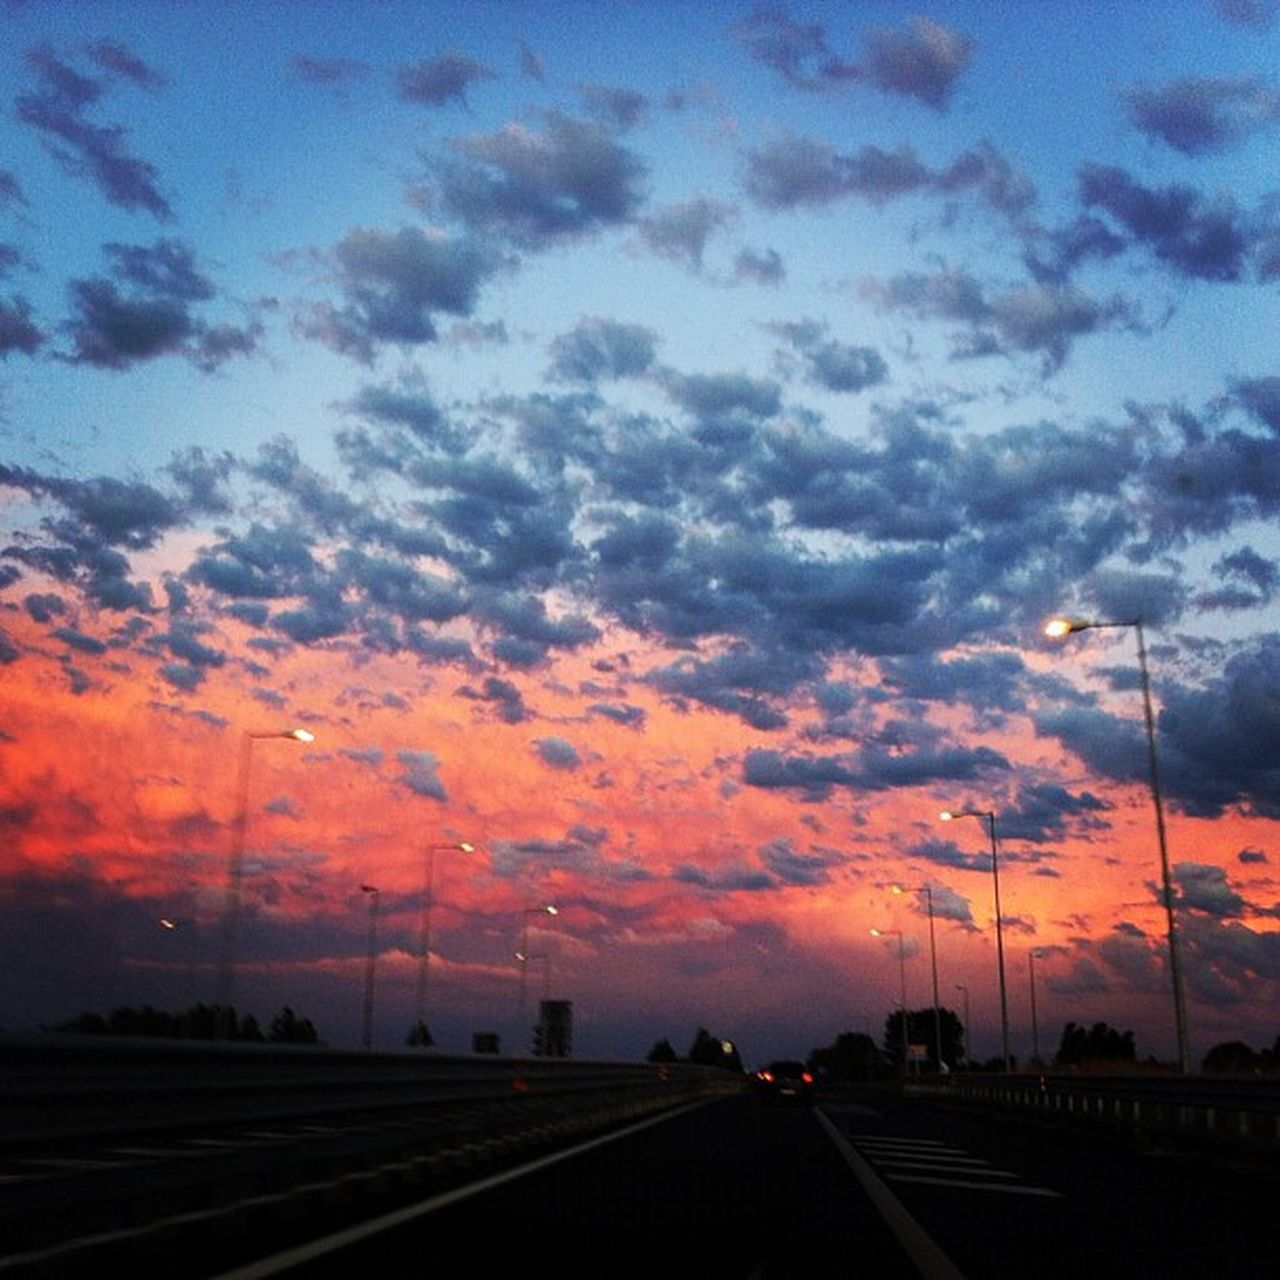 sunset, road, cloud - sky, dramatic sky, sky, transportation, street, no people, car, nature, the way forward, scenics, beauty in nature, outdoors, city